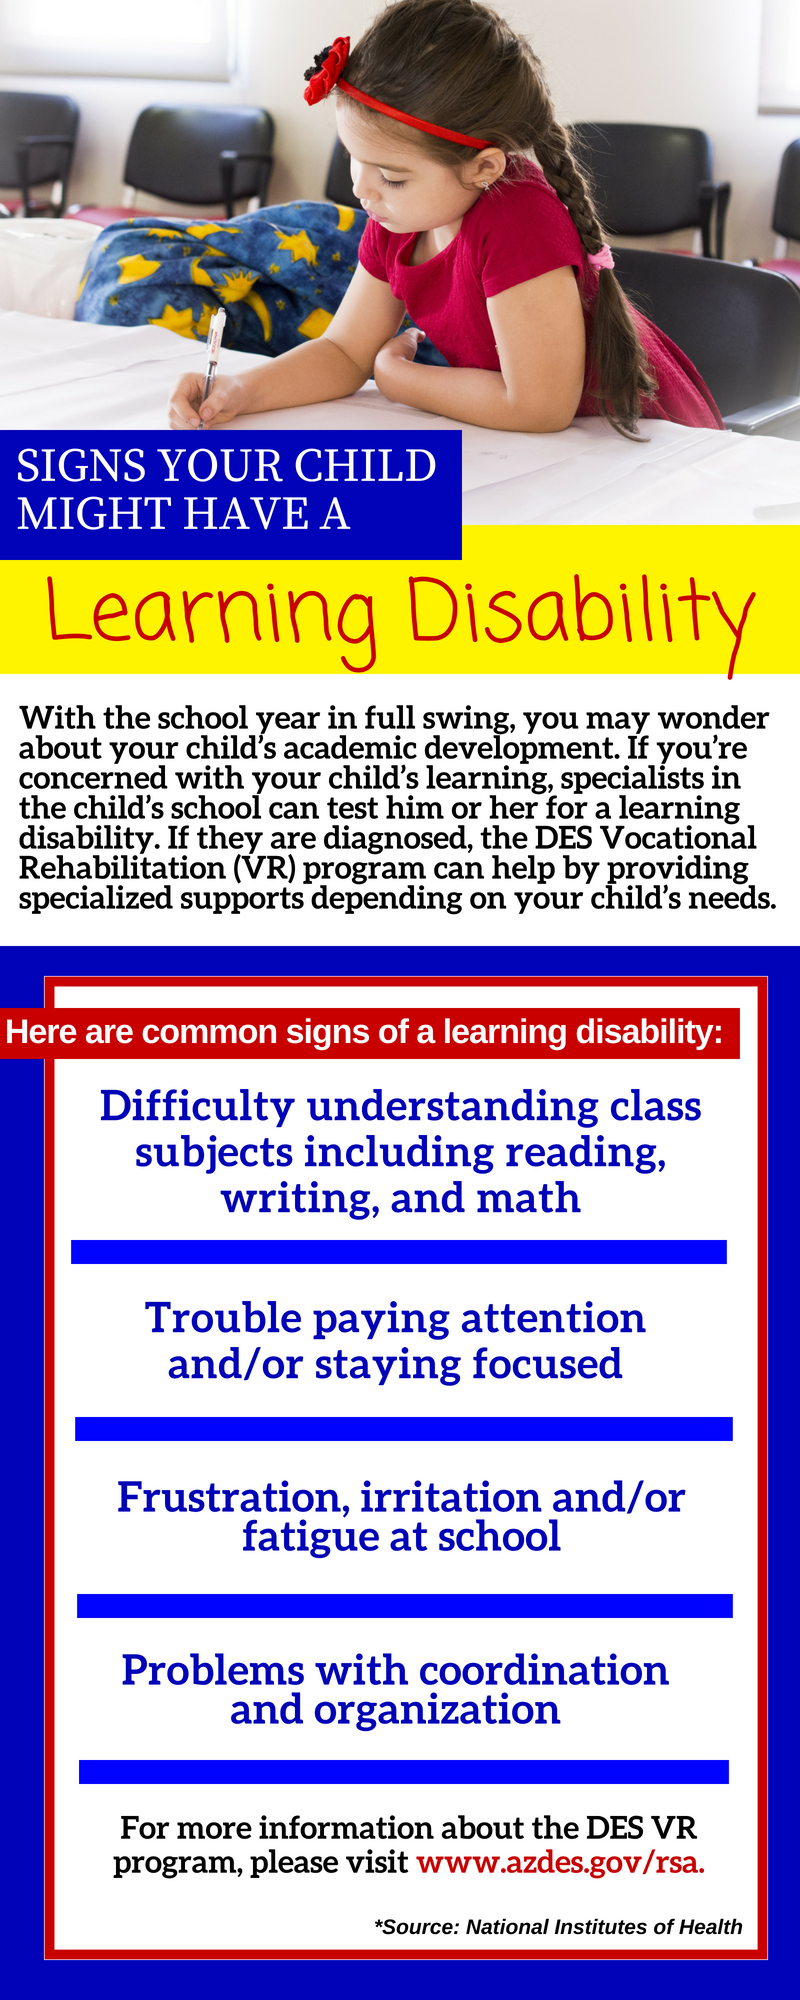 Information about learning disabilities in children